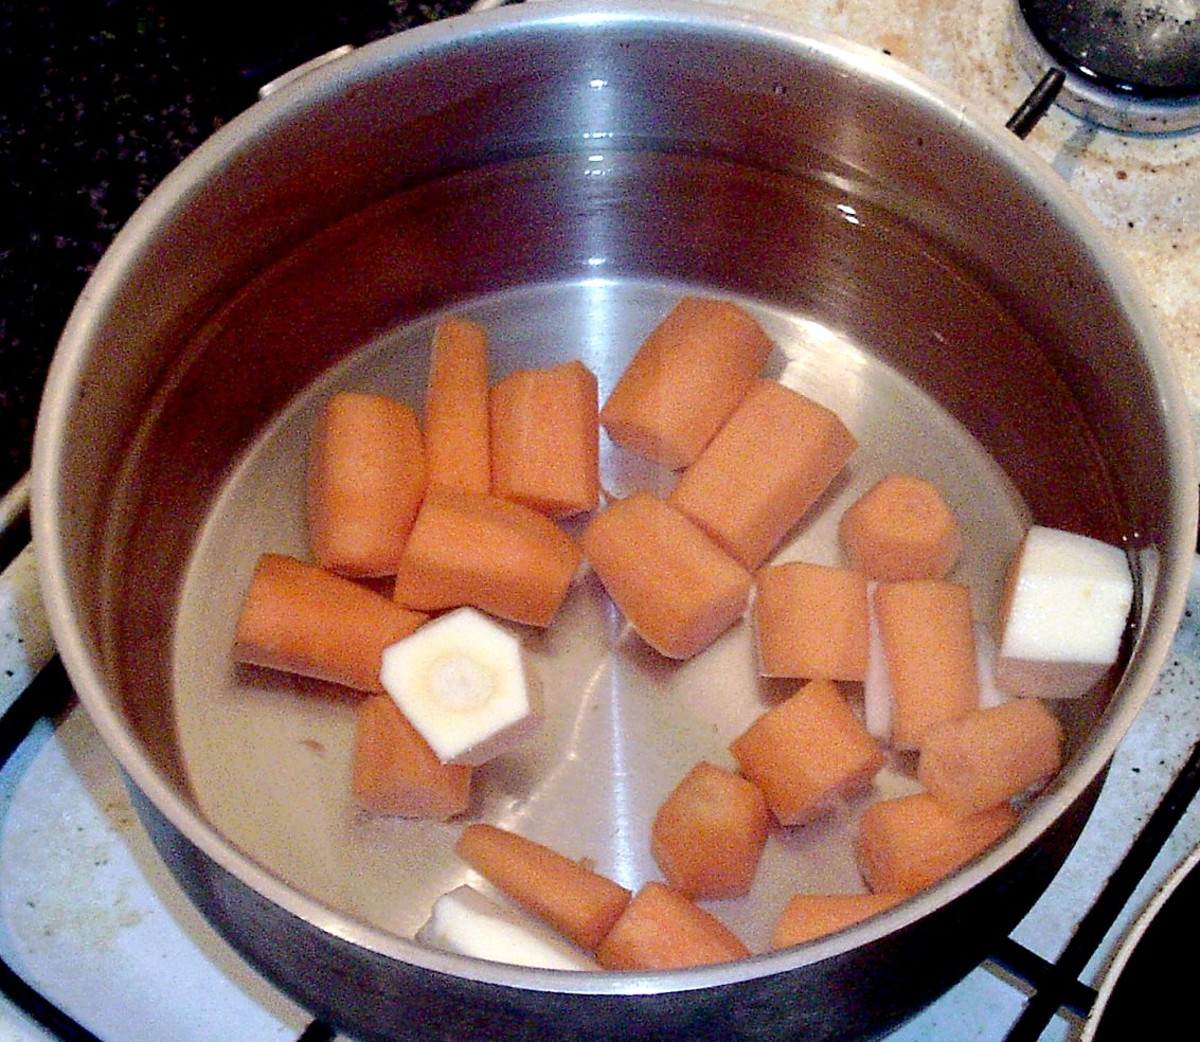 Carrots and parsnips for mash are put on to cook